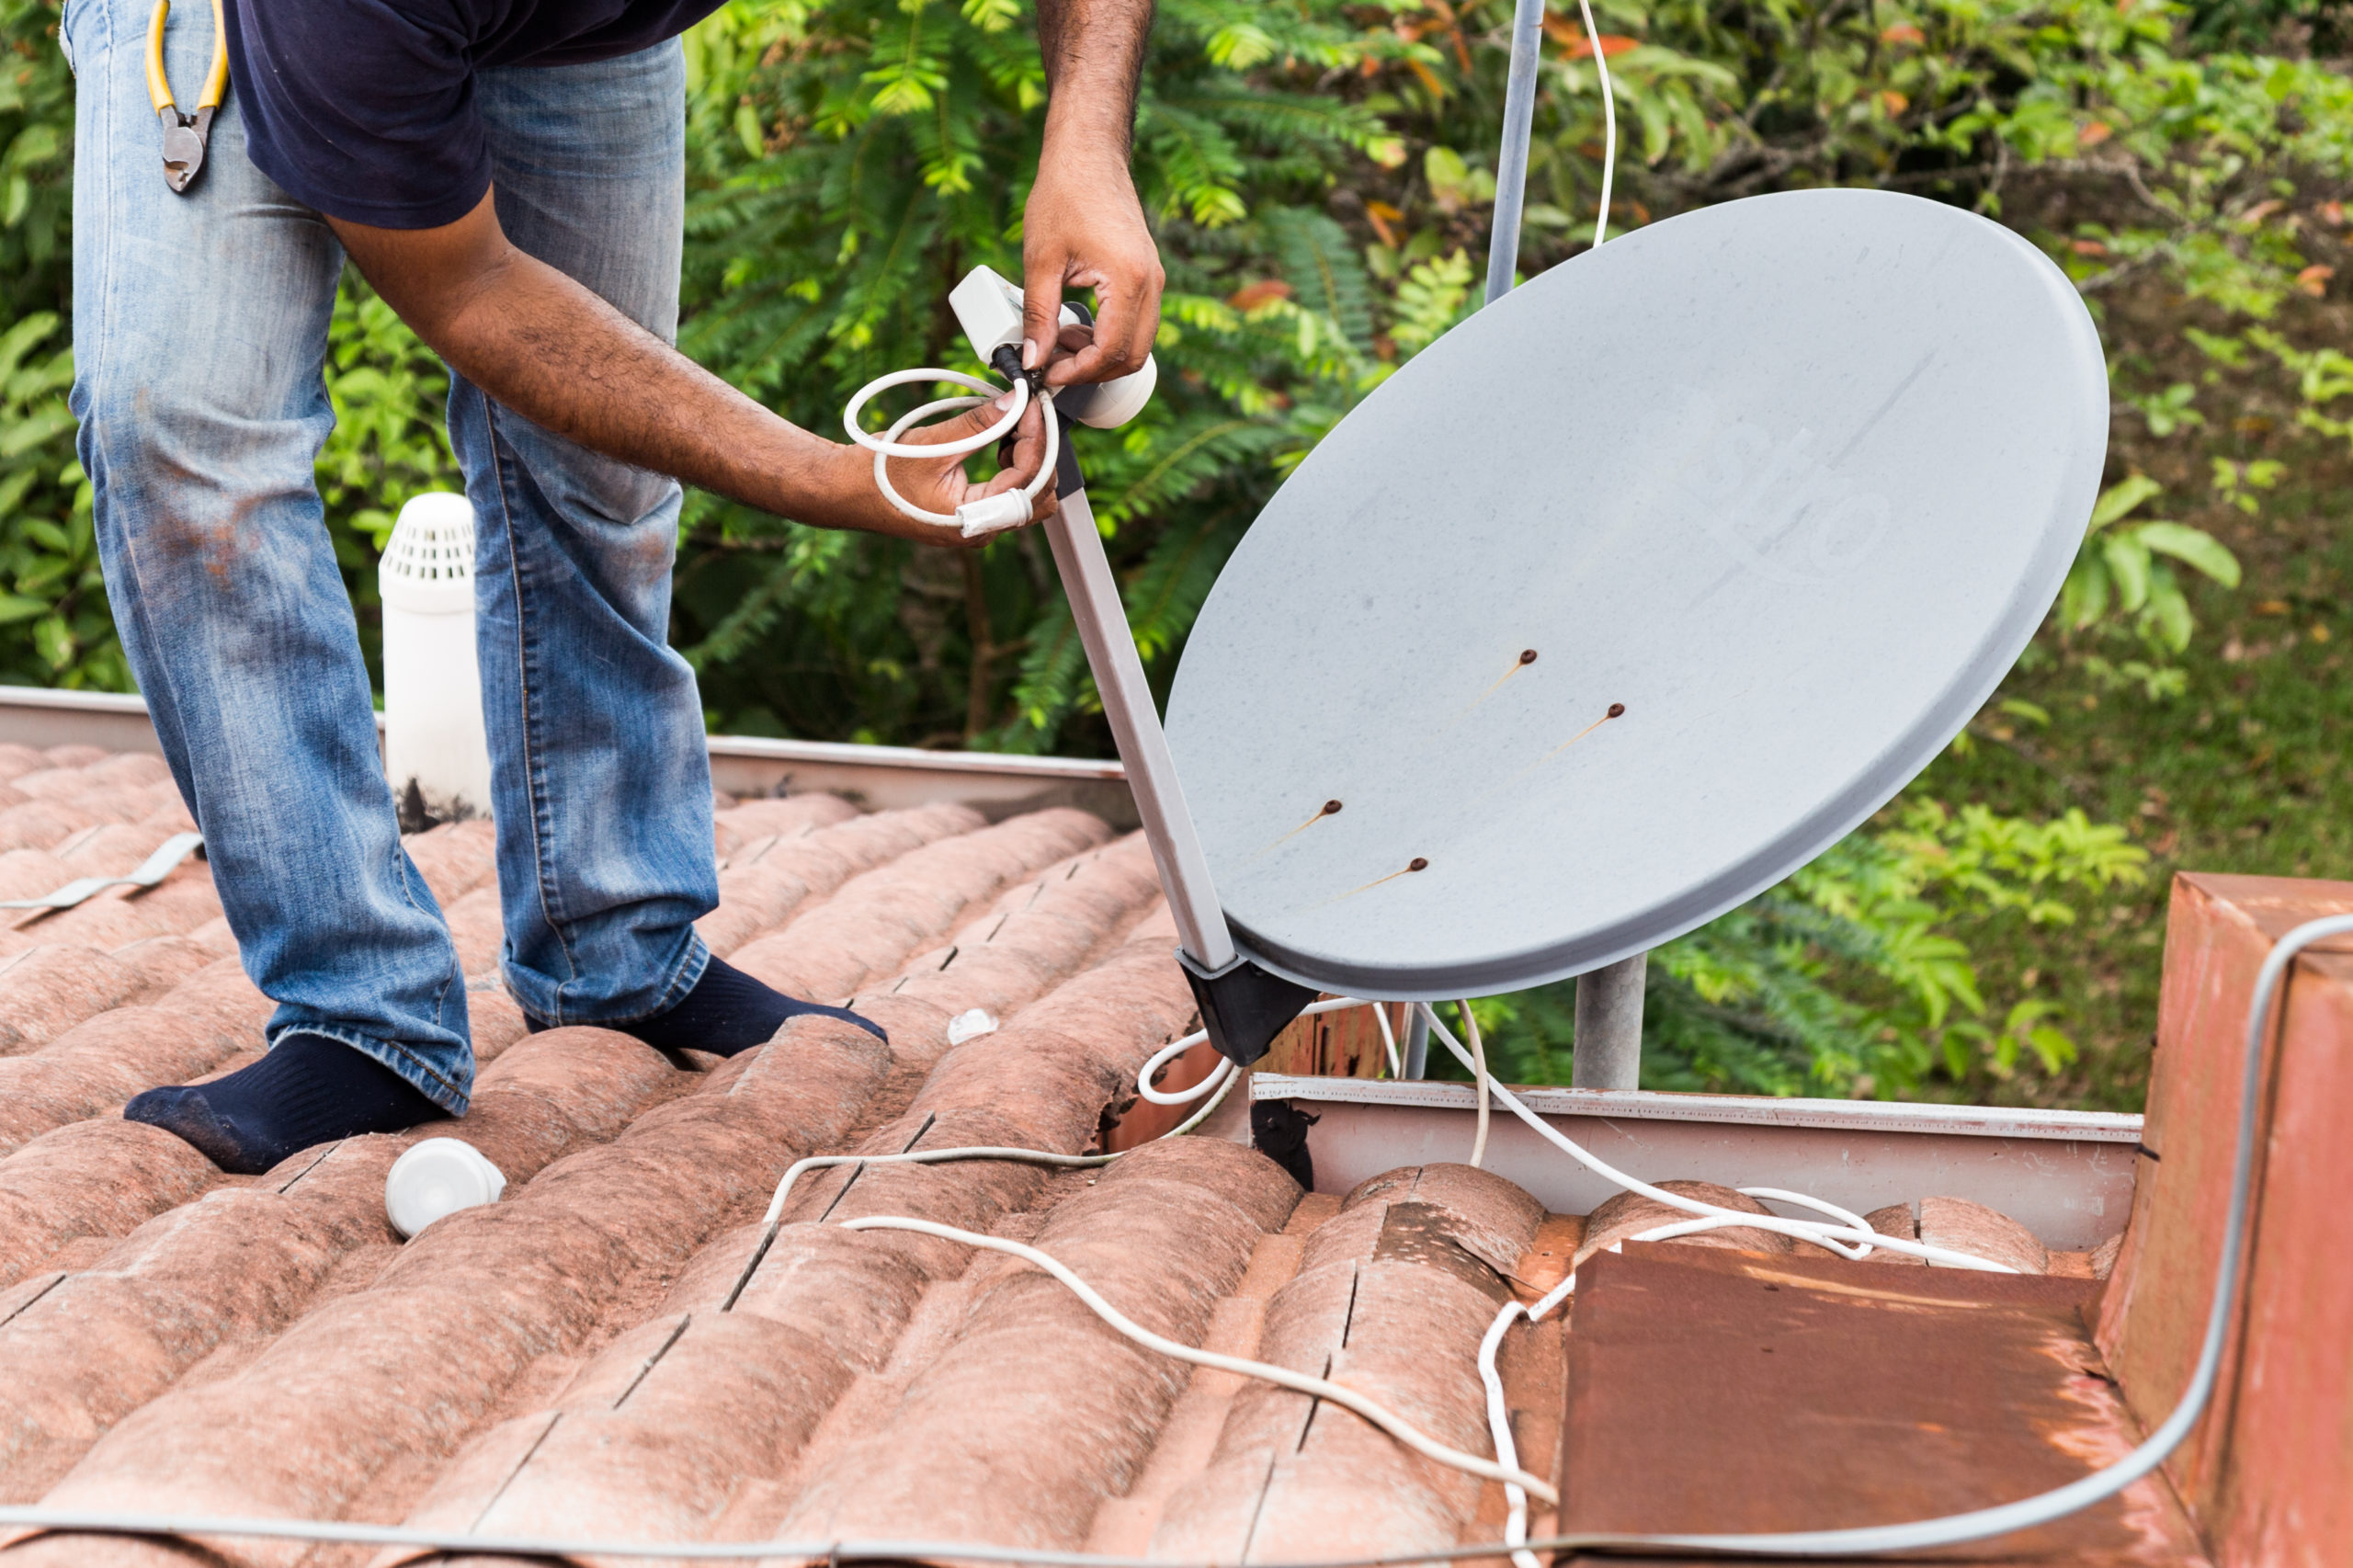 Worker installing satellite dish and antenna on roof top - https://elements.envato.com/worker-installing-satellite-dish-and-antenna - https://elements.envato.com/worker-installing-satellite-dish-and-antenna-on-ro-P64UPCM